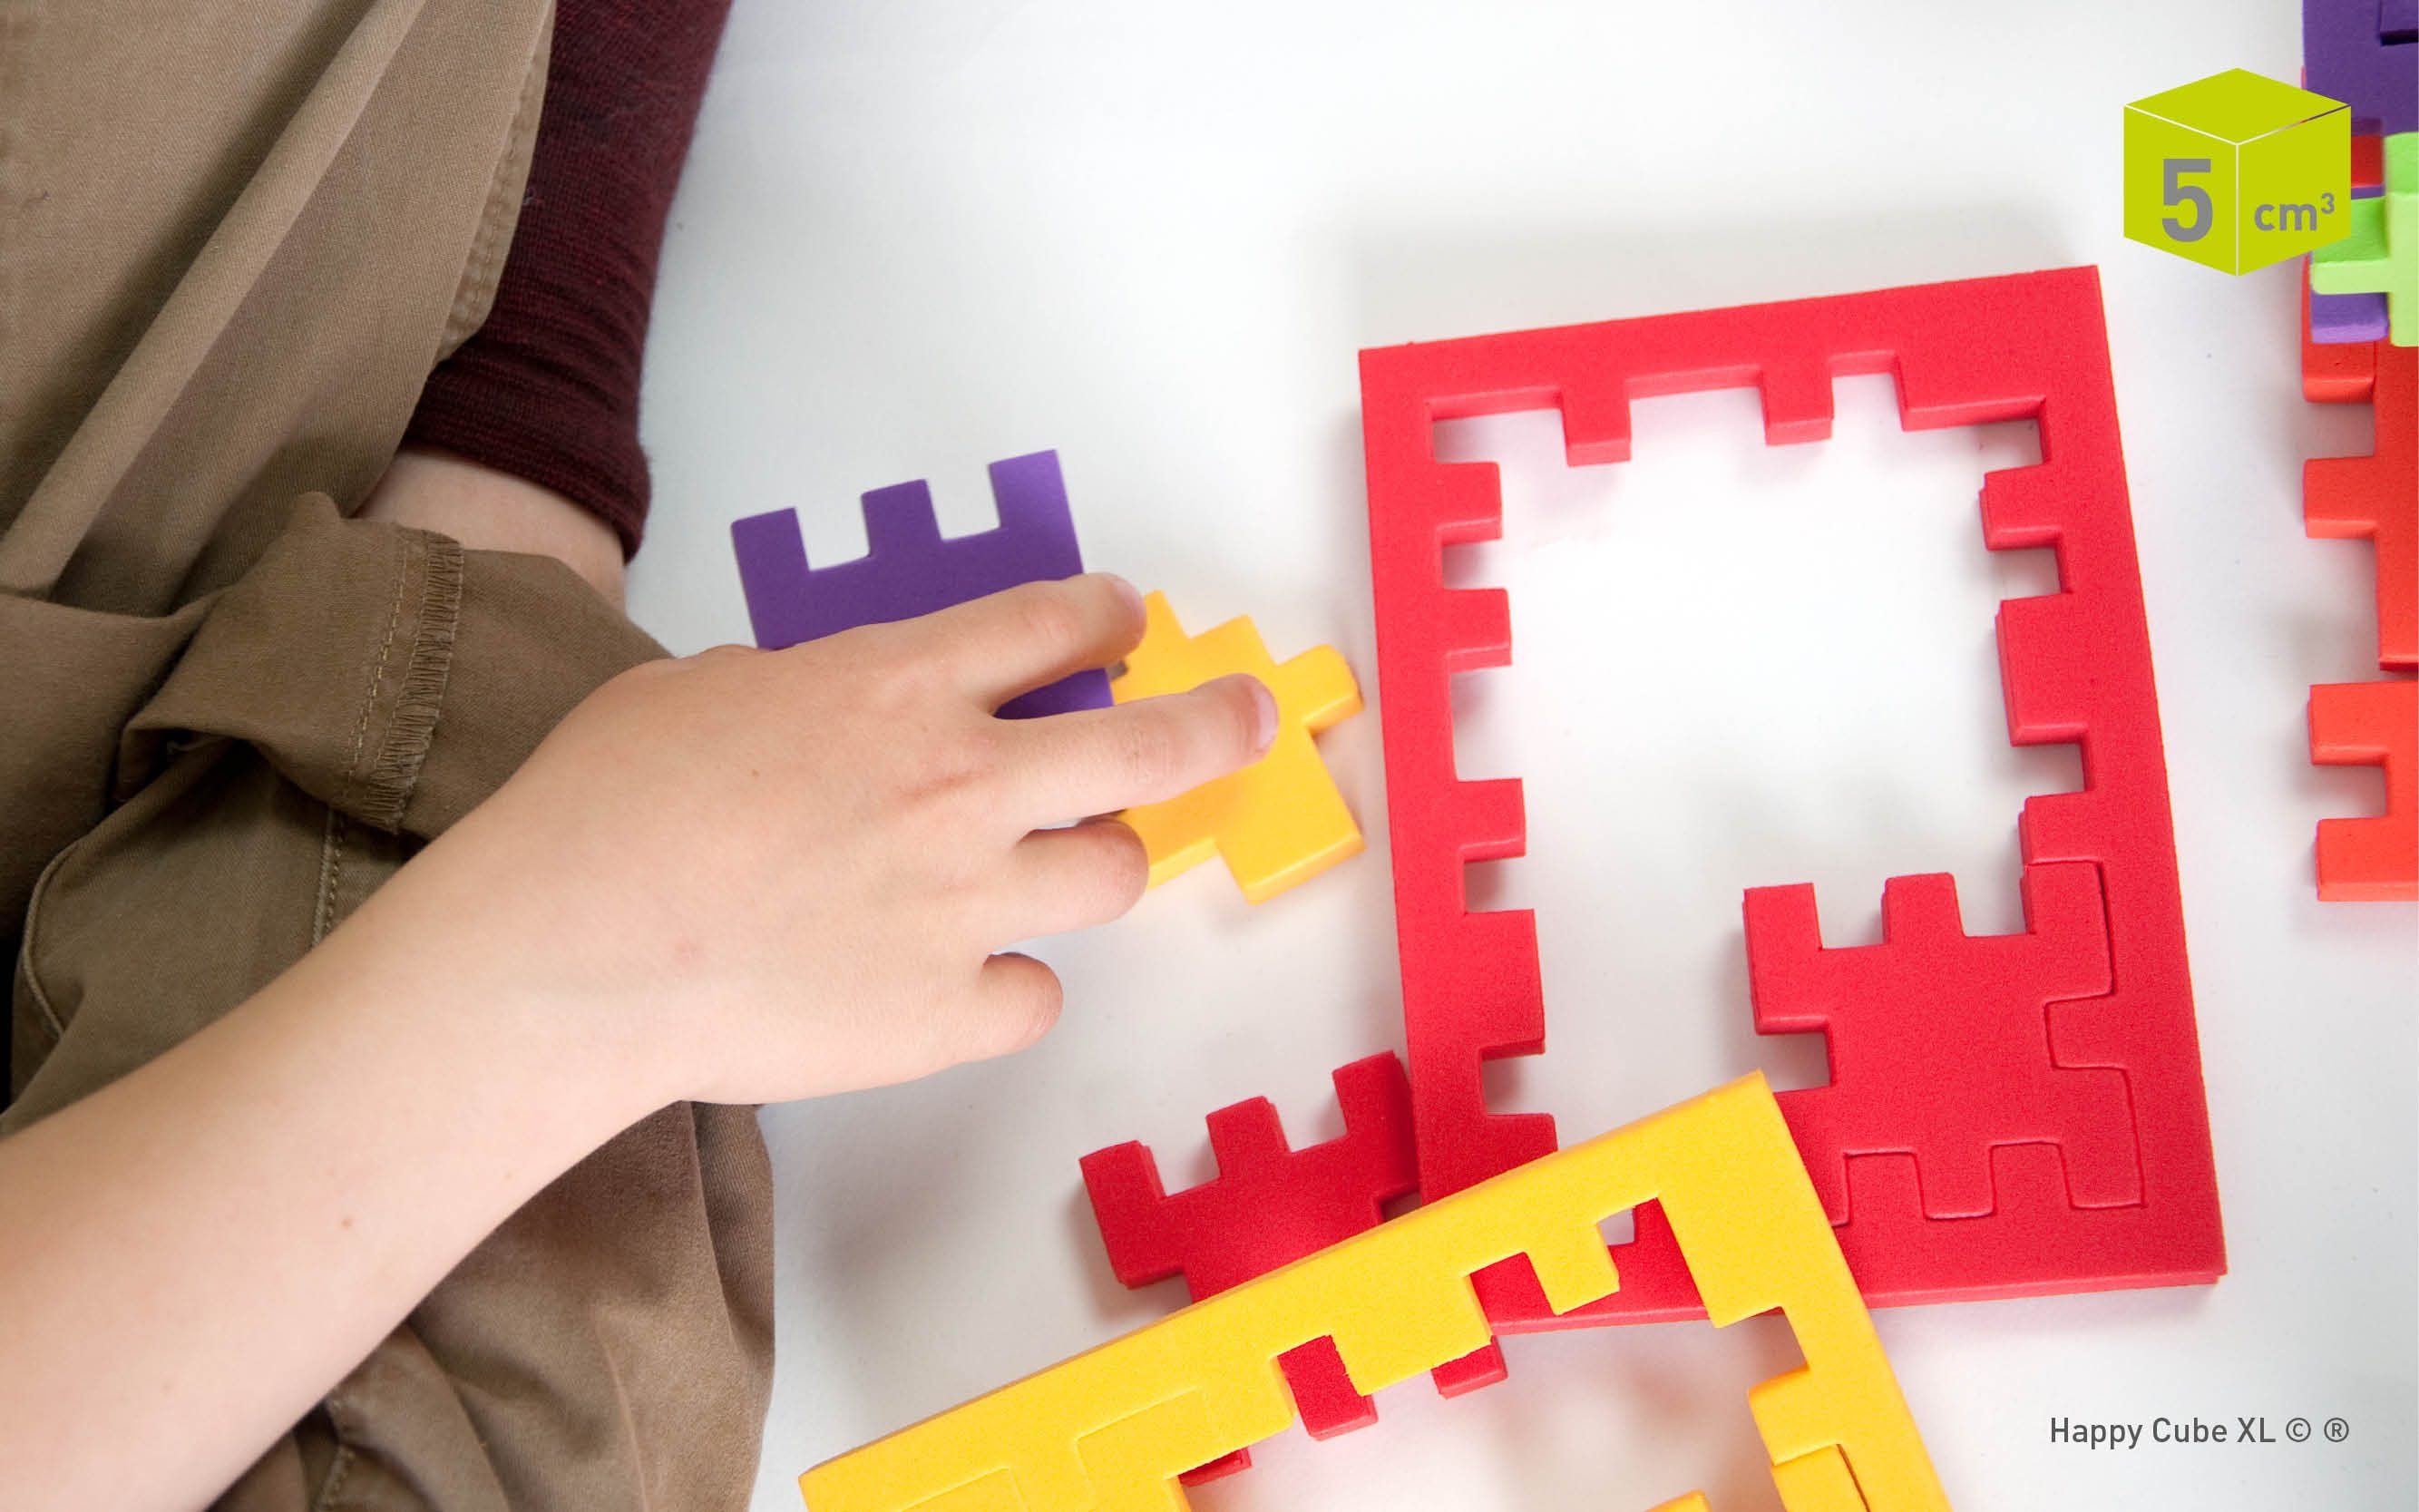 Happy_HCXL_Happy_Cube_XL-boy-puzzling-educational-game-haptic-toy